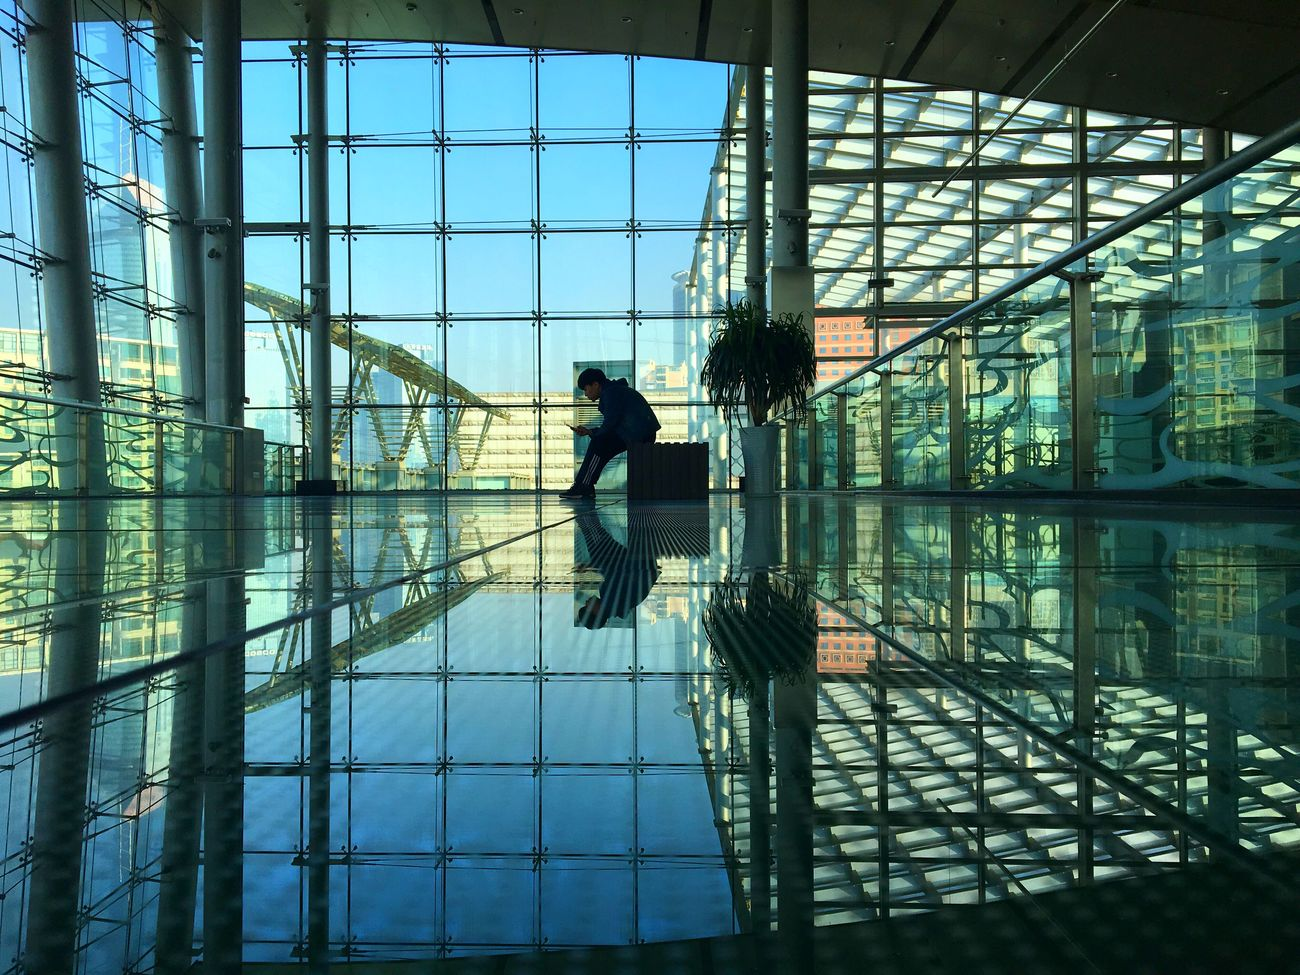 Reflection Full Length Indoors  Travel One Person Men Real People Airport Lifestyles Architecture Connection Adults Only Day Sky Adult People One Man Only Only Men